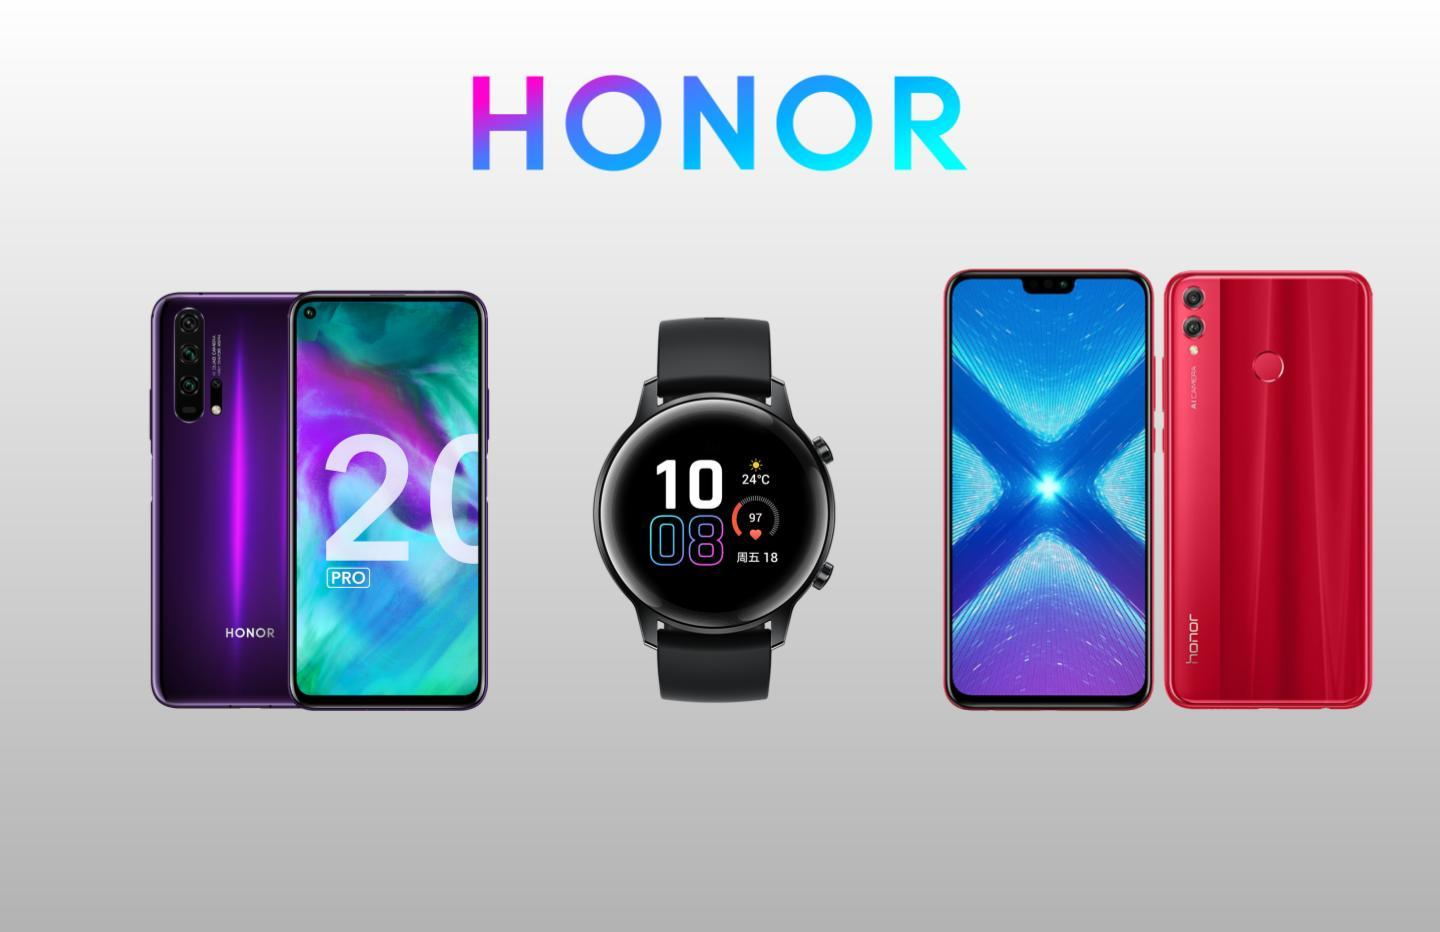 Honor relance sa boutique officielle : Honor 20 à 297 euros et Honor 20 Pro à 404 euros